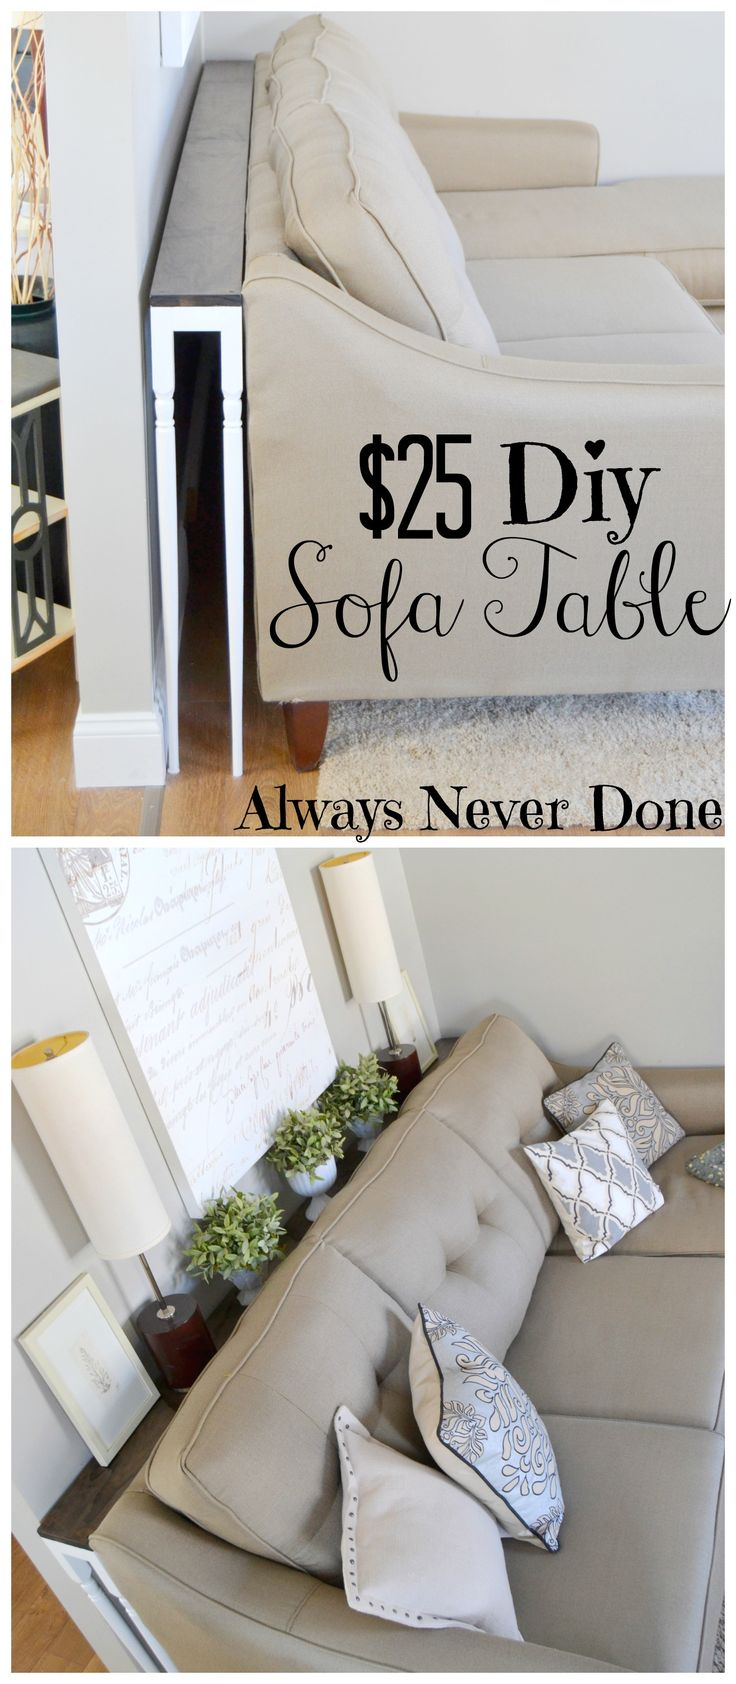 DIY Sofa Table for $25 using stair rails as legs.